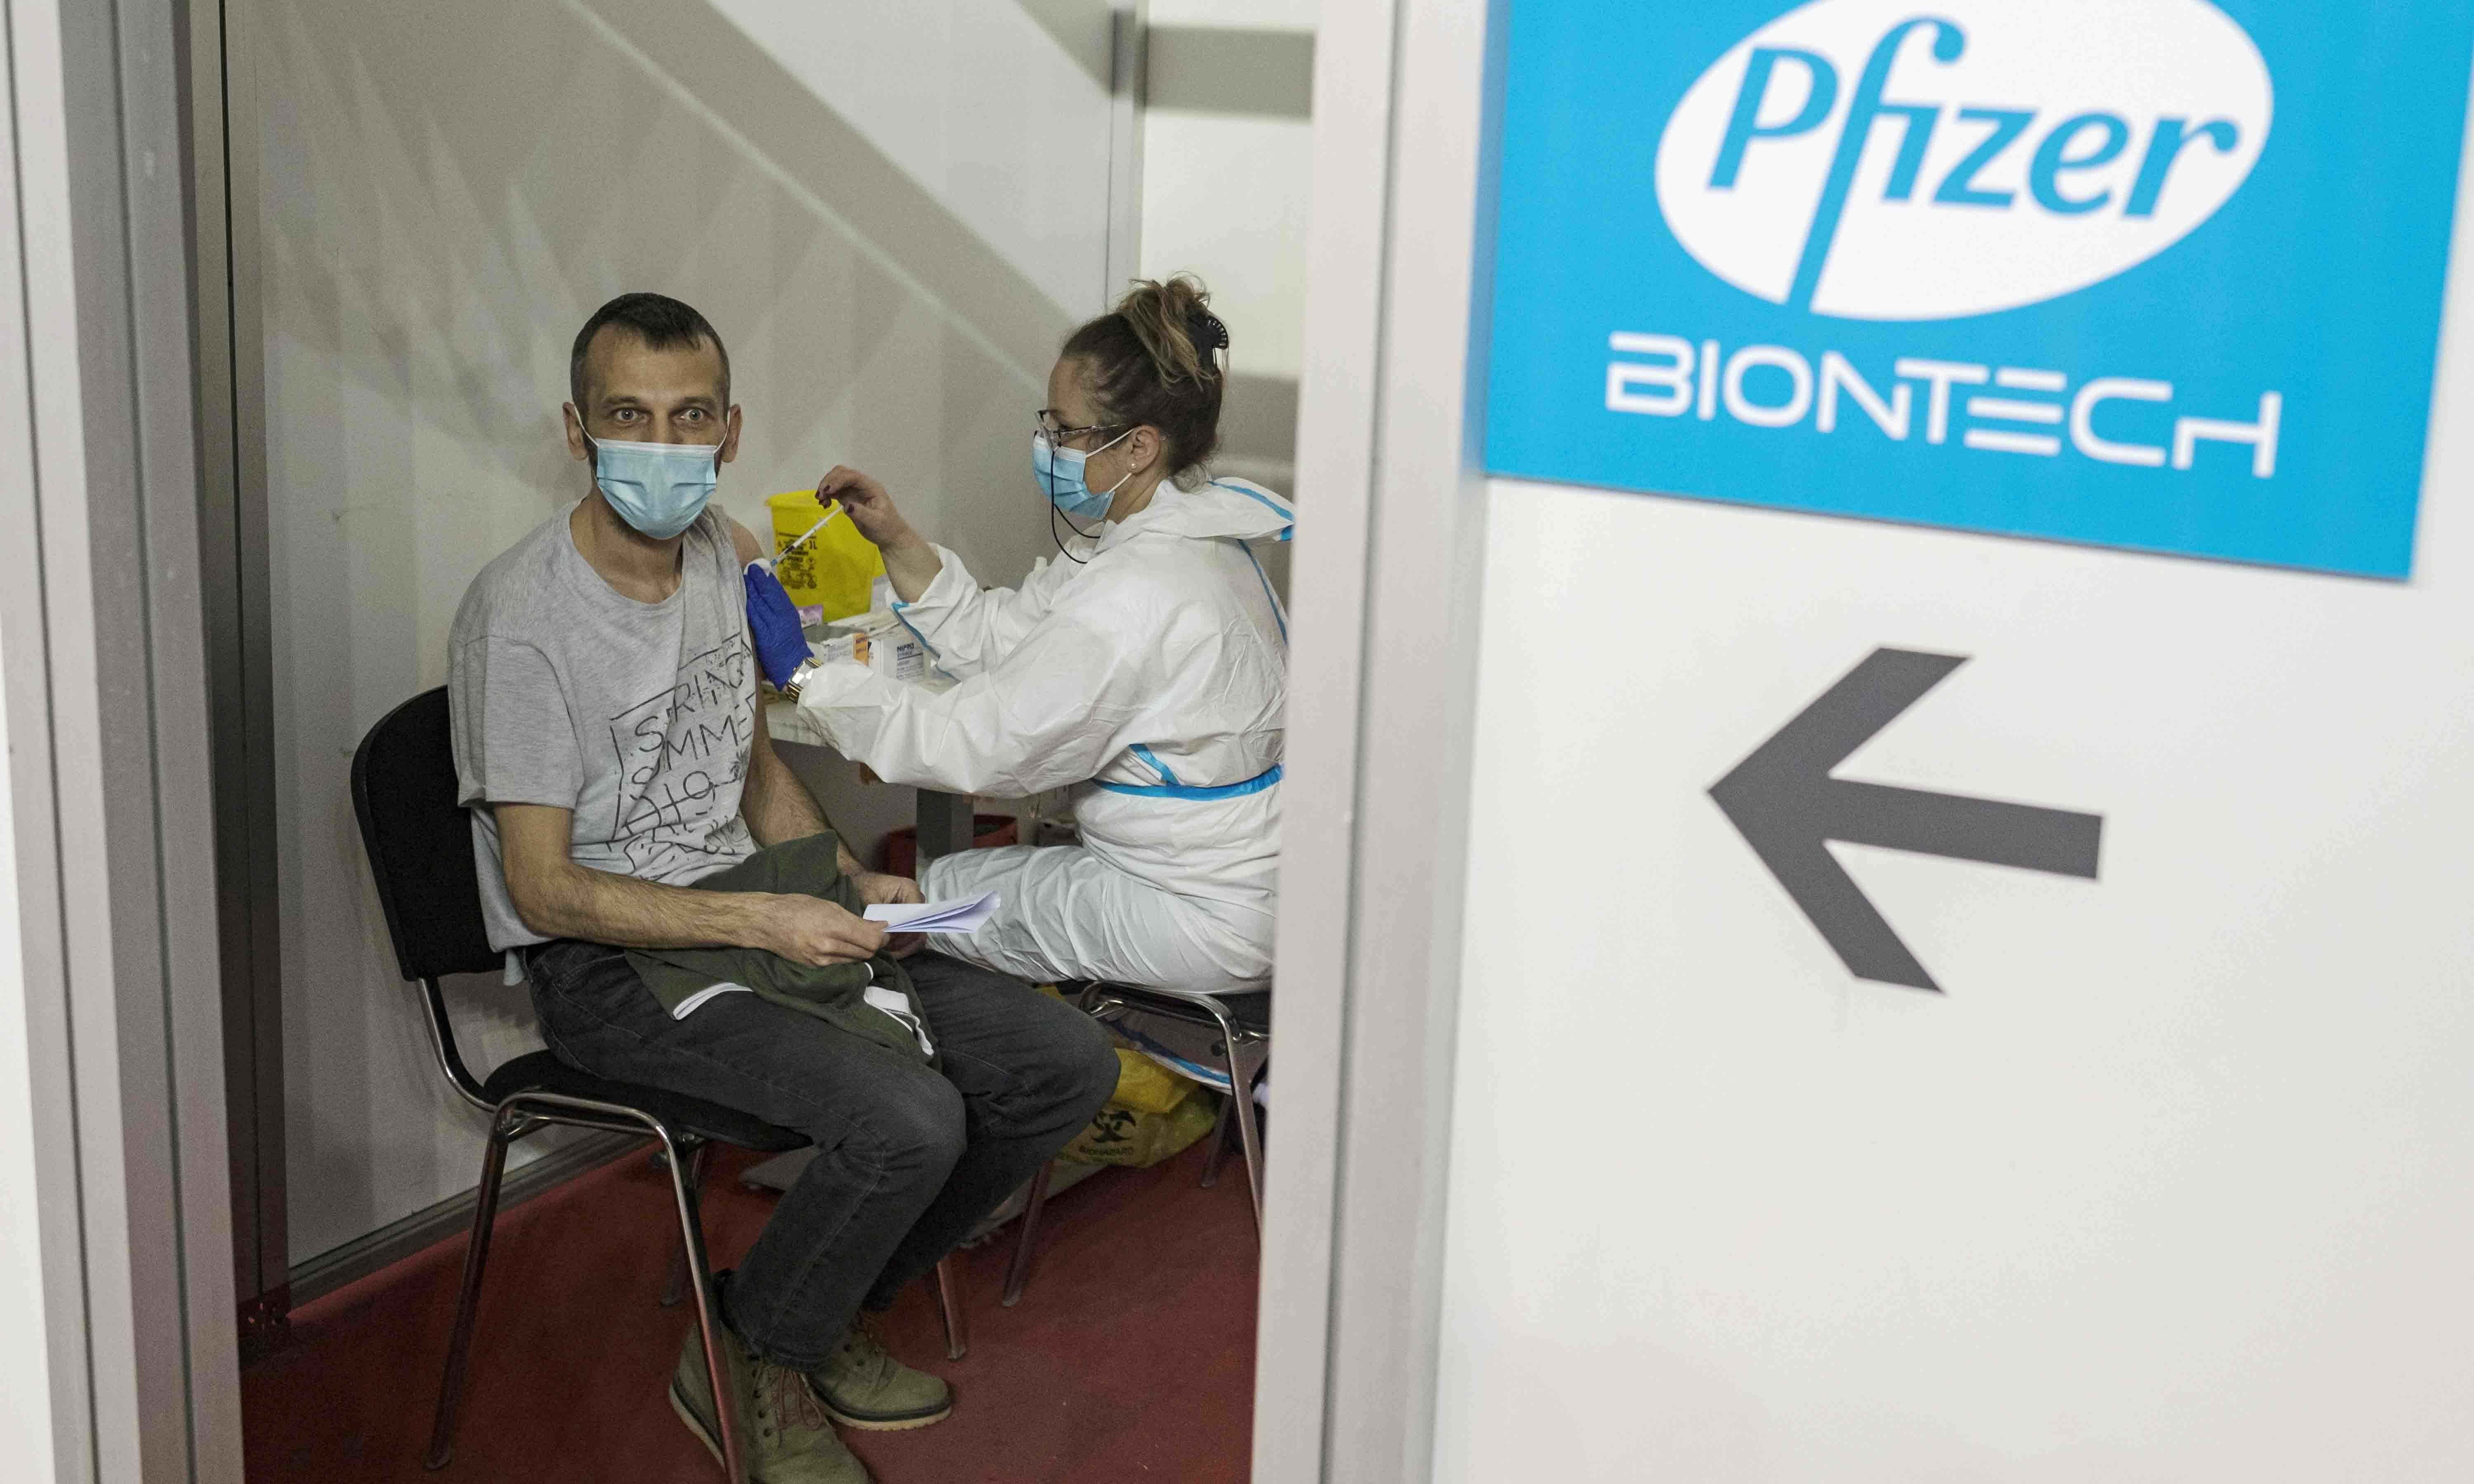 A man receives a second dose of the Pfizer-BioNTech vaccine against the coronavirus disease in Belgrade, Serbia, on April 13. — Reuters